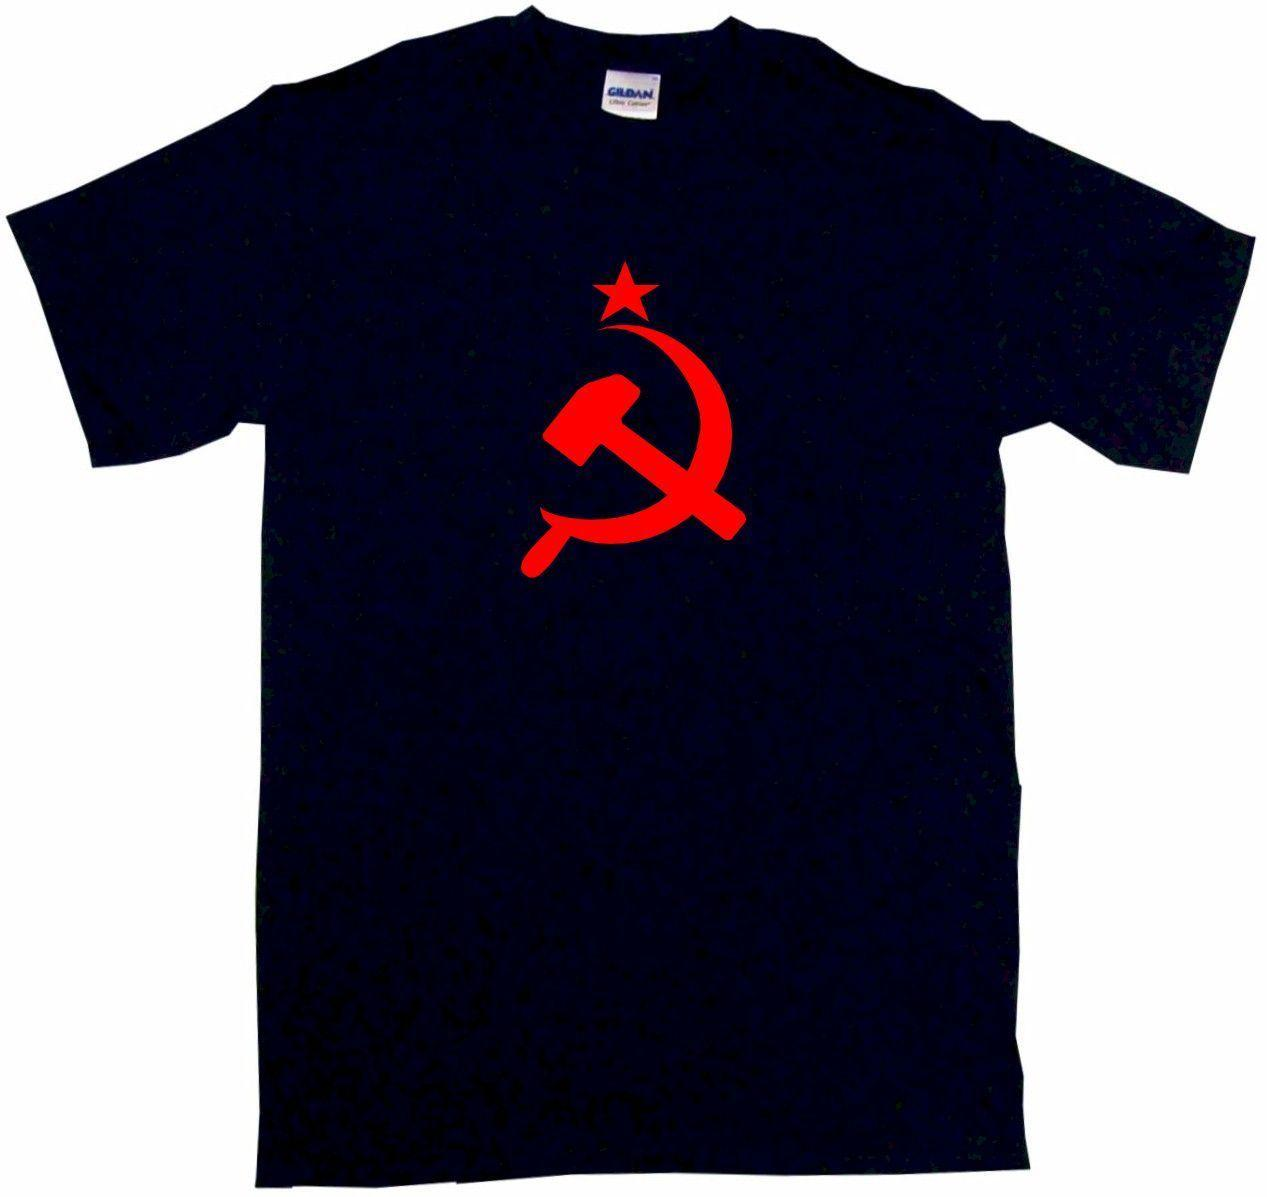 Russian CCCP Hammer & Sickle Flag Logo Mens Tee Shirt Pick Size Color Funny free shipping Unisex